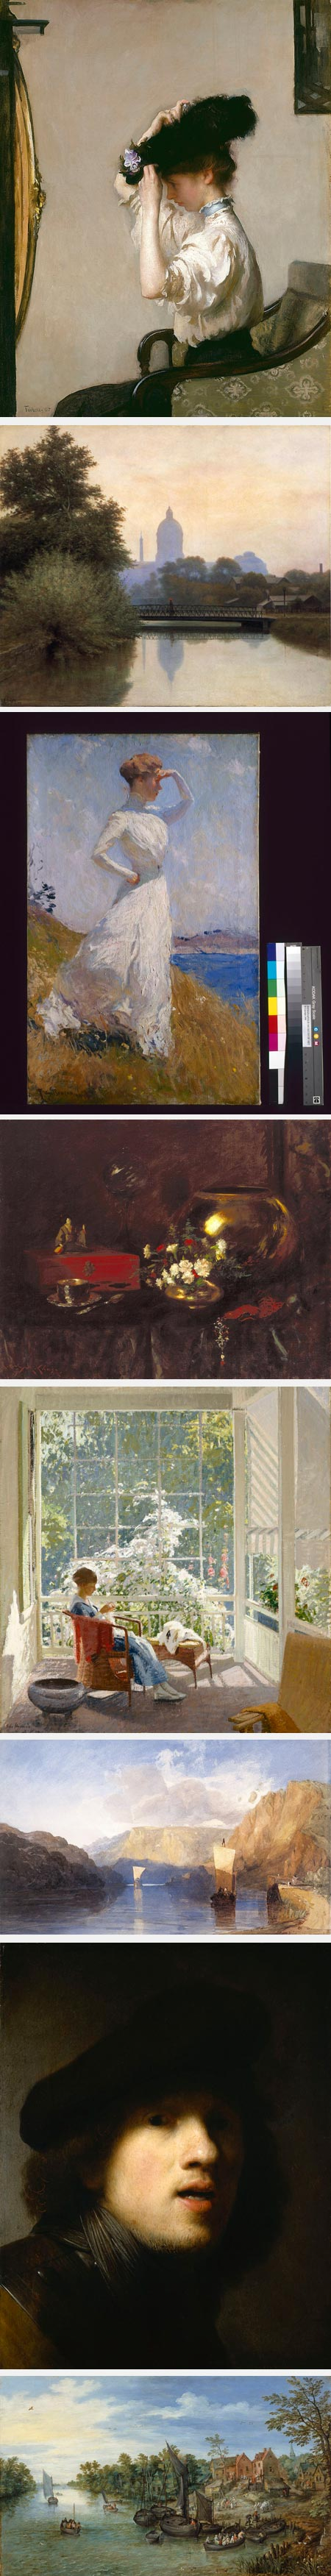 The Indianapolis Museum of Art: Edmund Tarbell, Richard B. Gruelle, Frank W. Benson, William Merritt Chase, John Sharman, John Cotman Sell, Rembrandt, Jan Brueghel the Elder